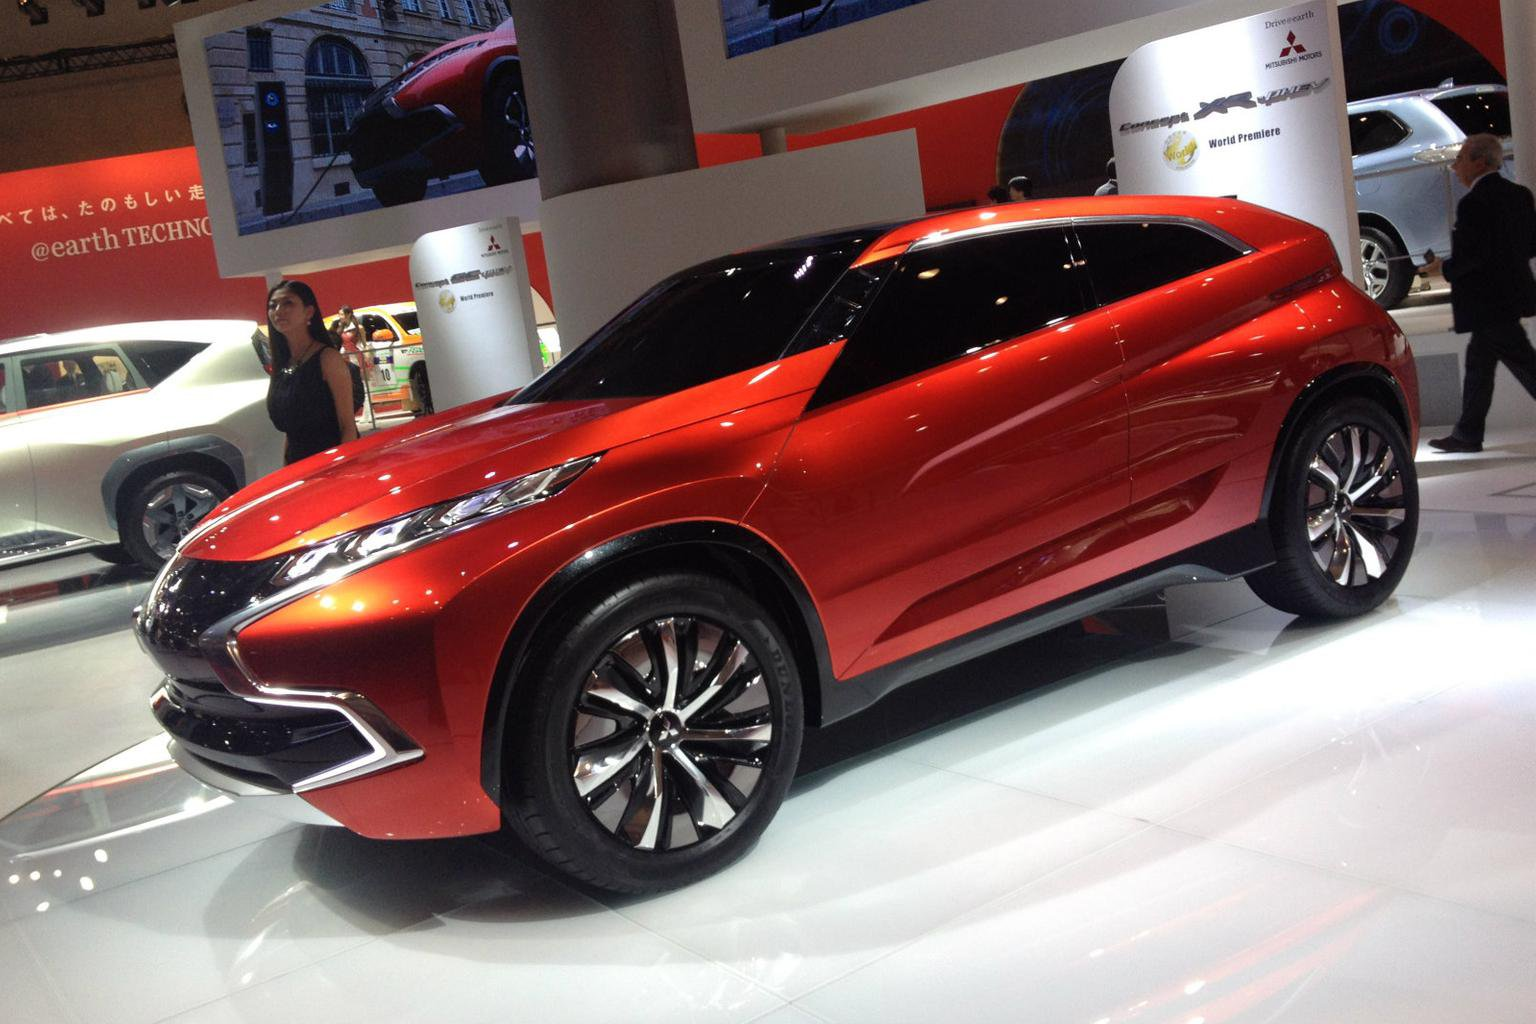 New Mitsubishi models previewed in Tokyo